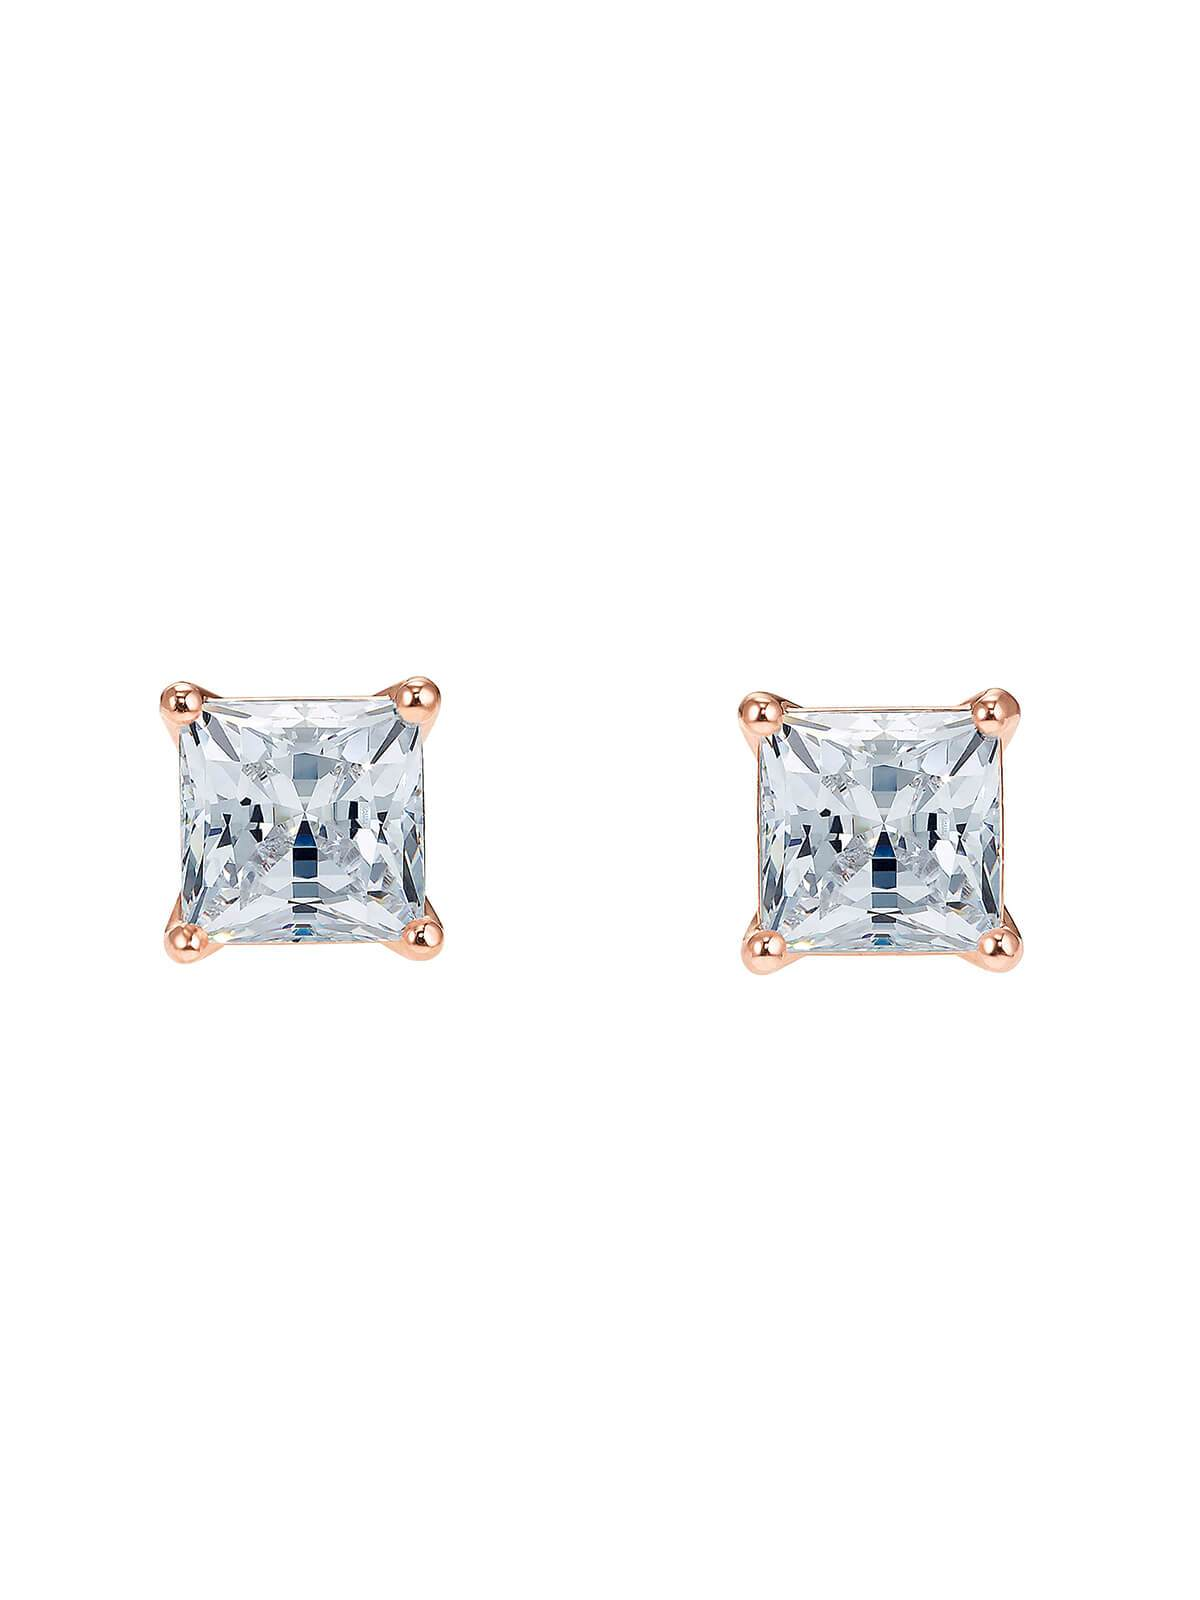 5509935 Swarovski Attract Square Rose Gold Plated & Crystal Stud Earrings